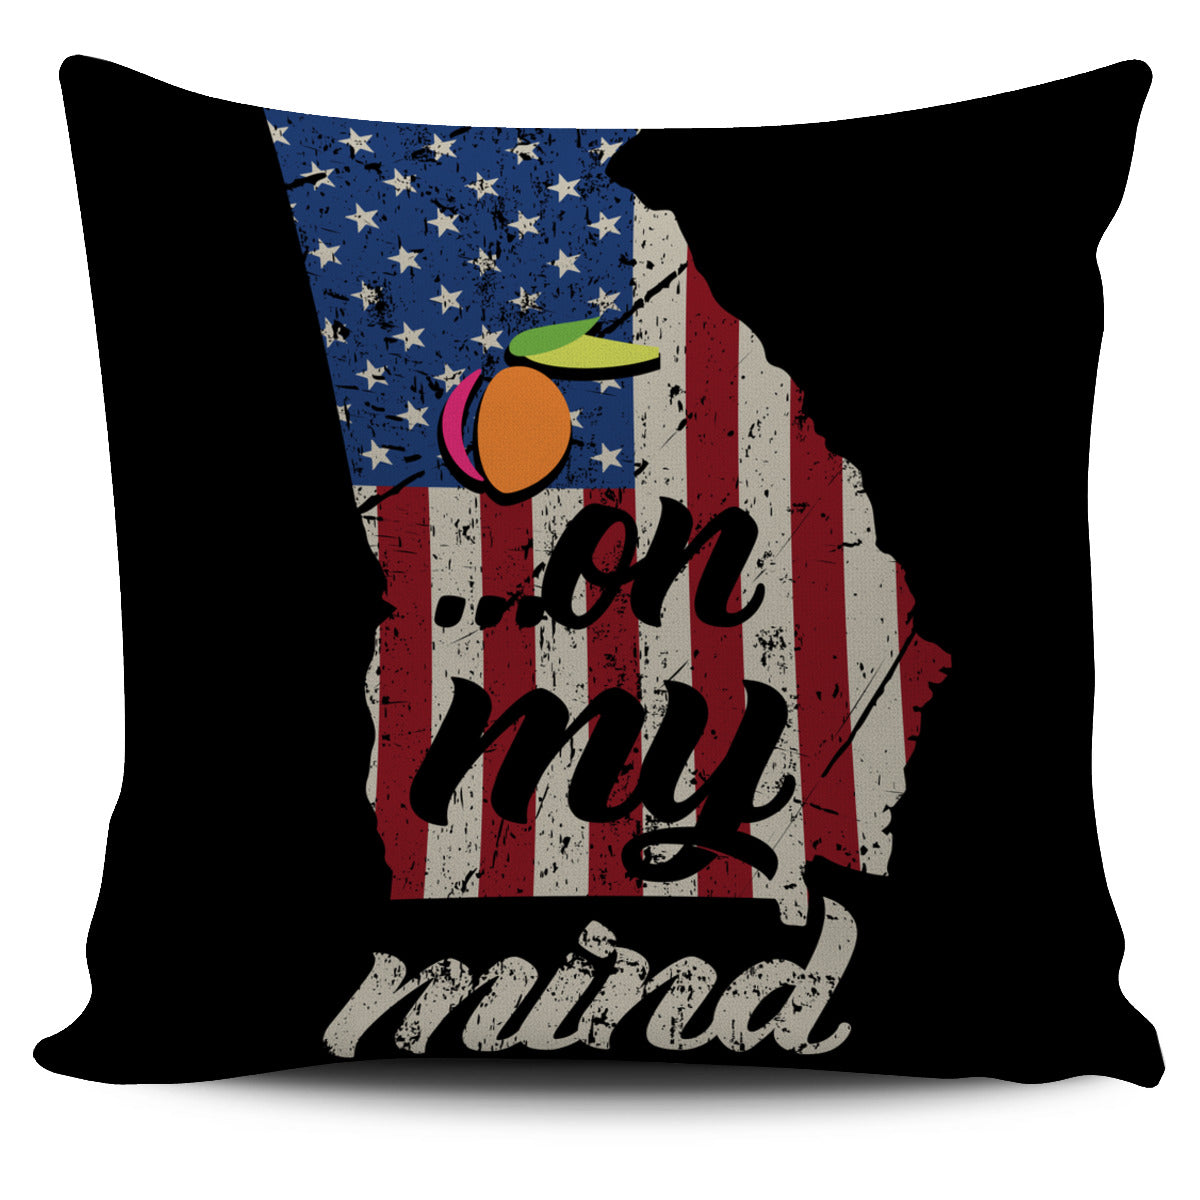 GA On My Mind Pillow Case!